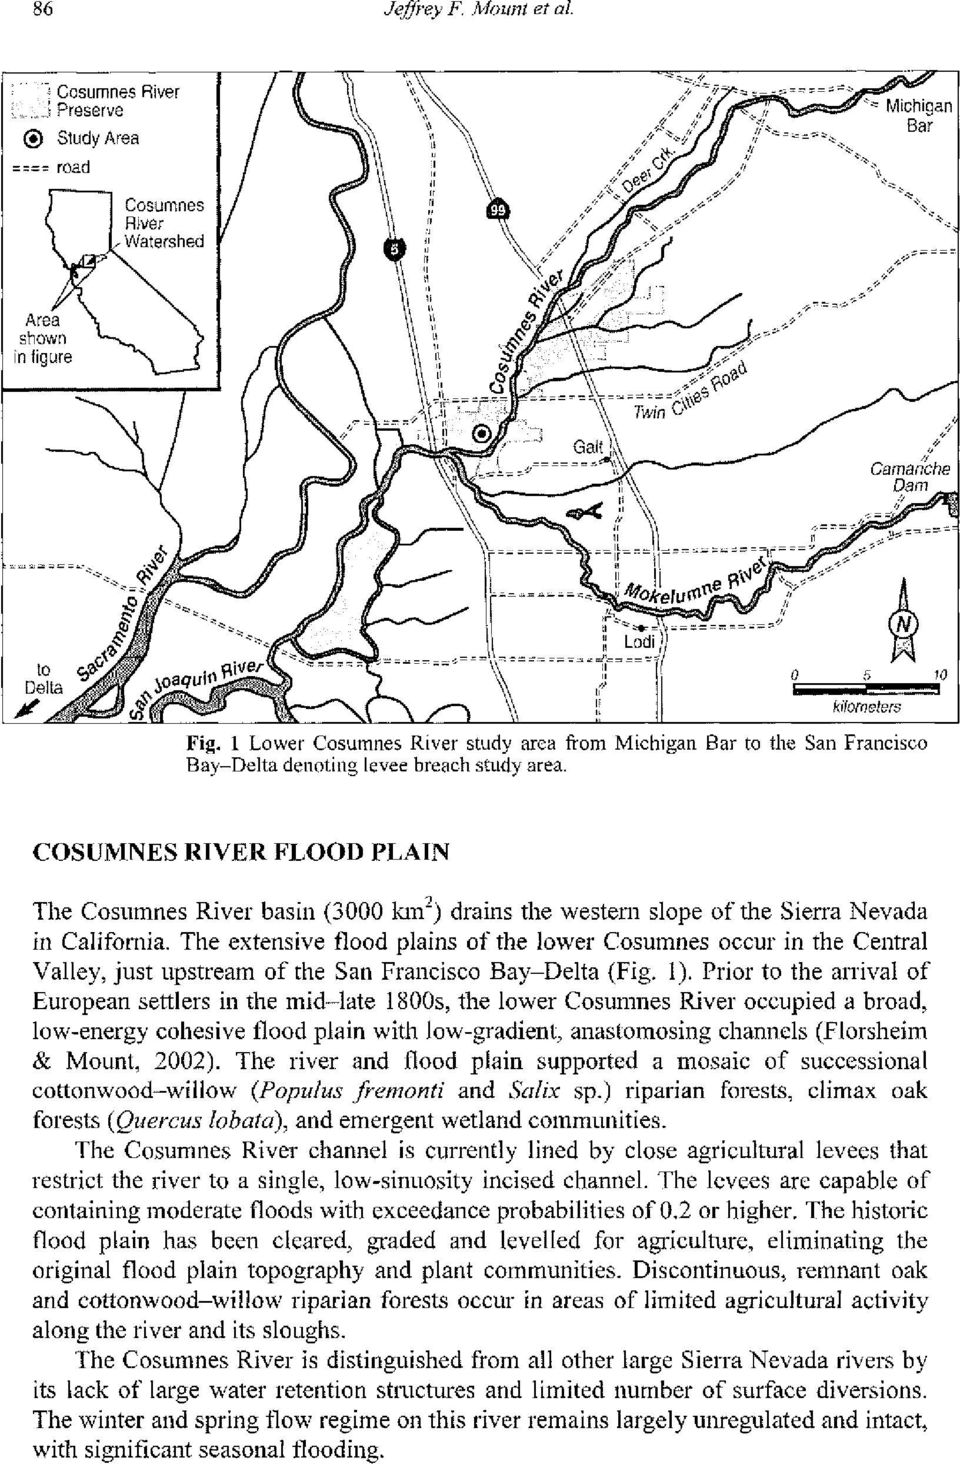 Prior to the arrival of European settlers in the mid-late 1800s, the lower Cosumnes River occupied a broad, low-energy cohesive flood plain with low-gradient, anastomosing channels (Florsheim &